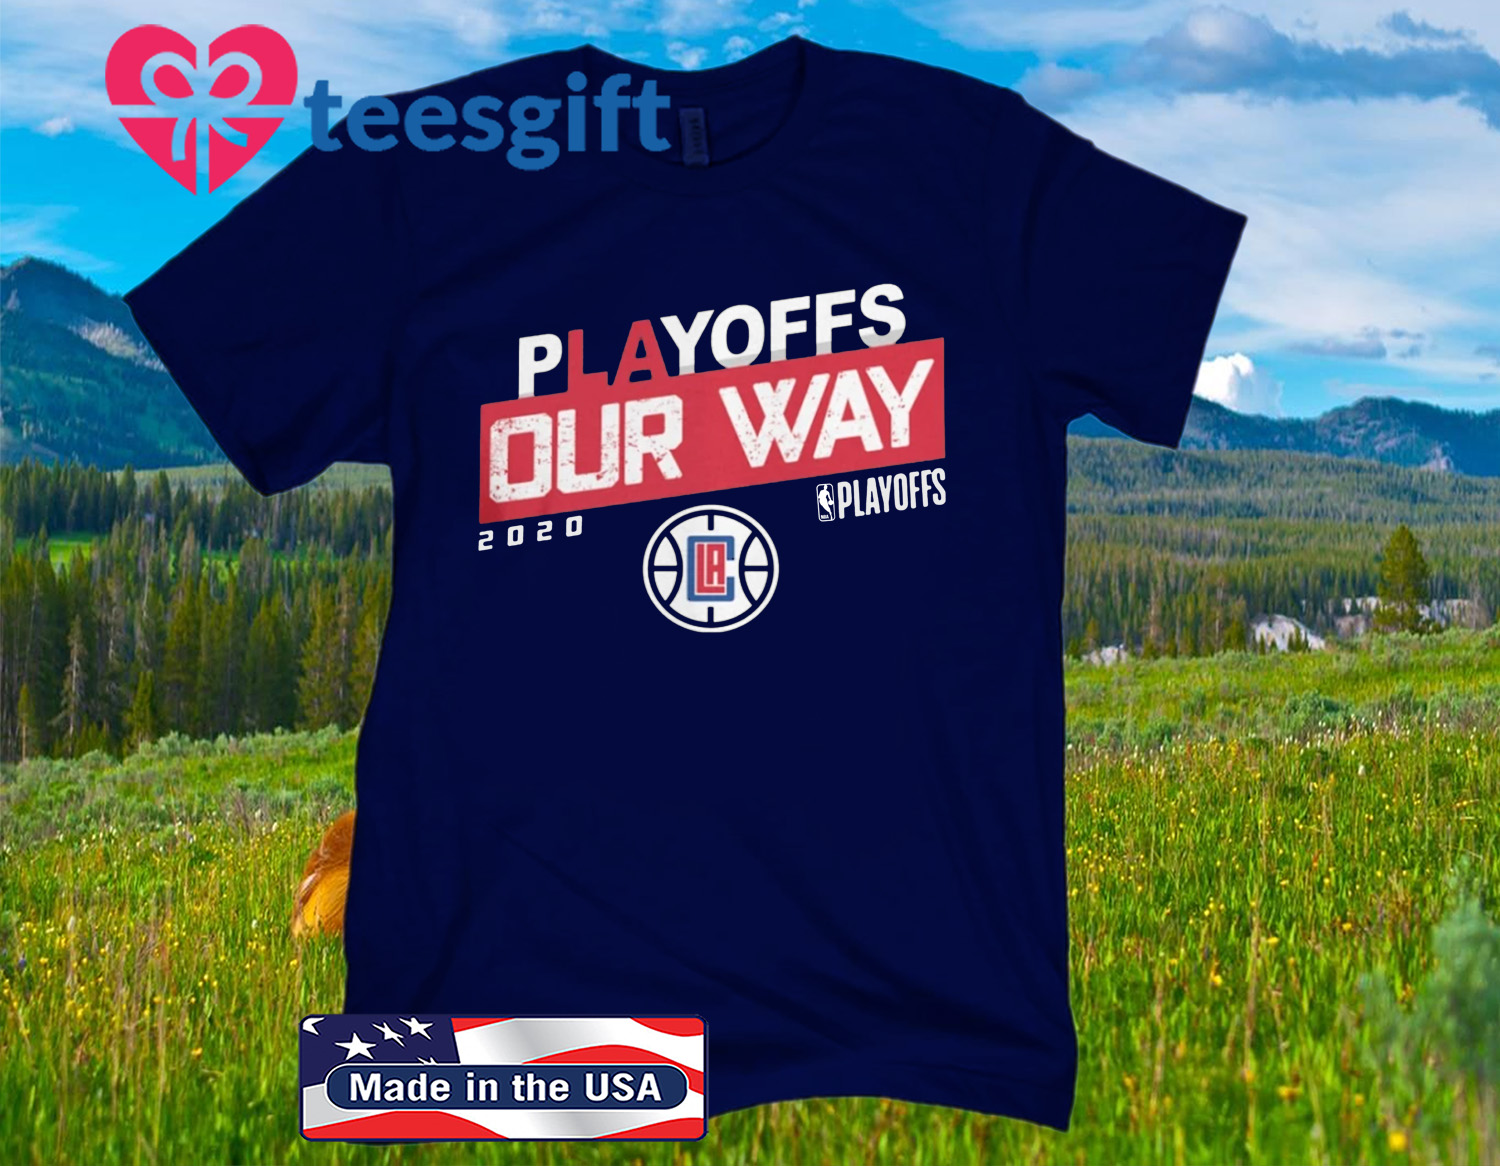 PLAYOFF OUR WAY LOGO T-SHIRTS